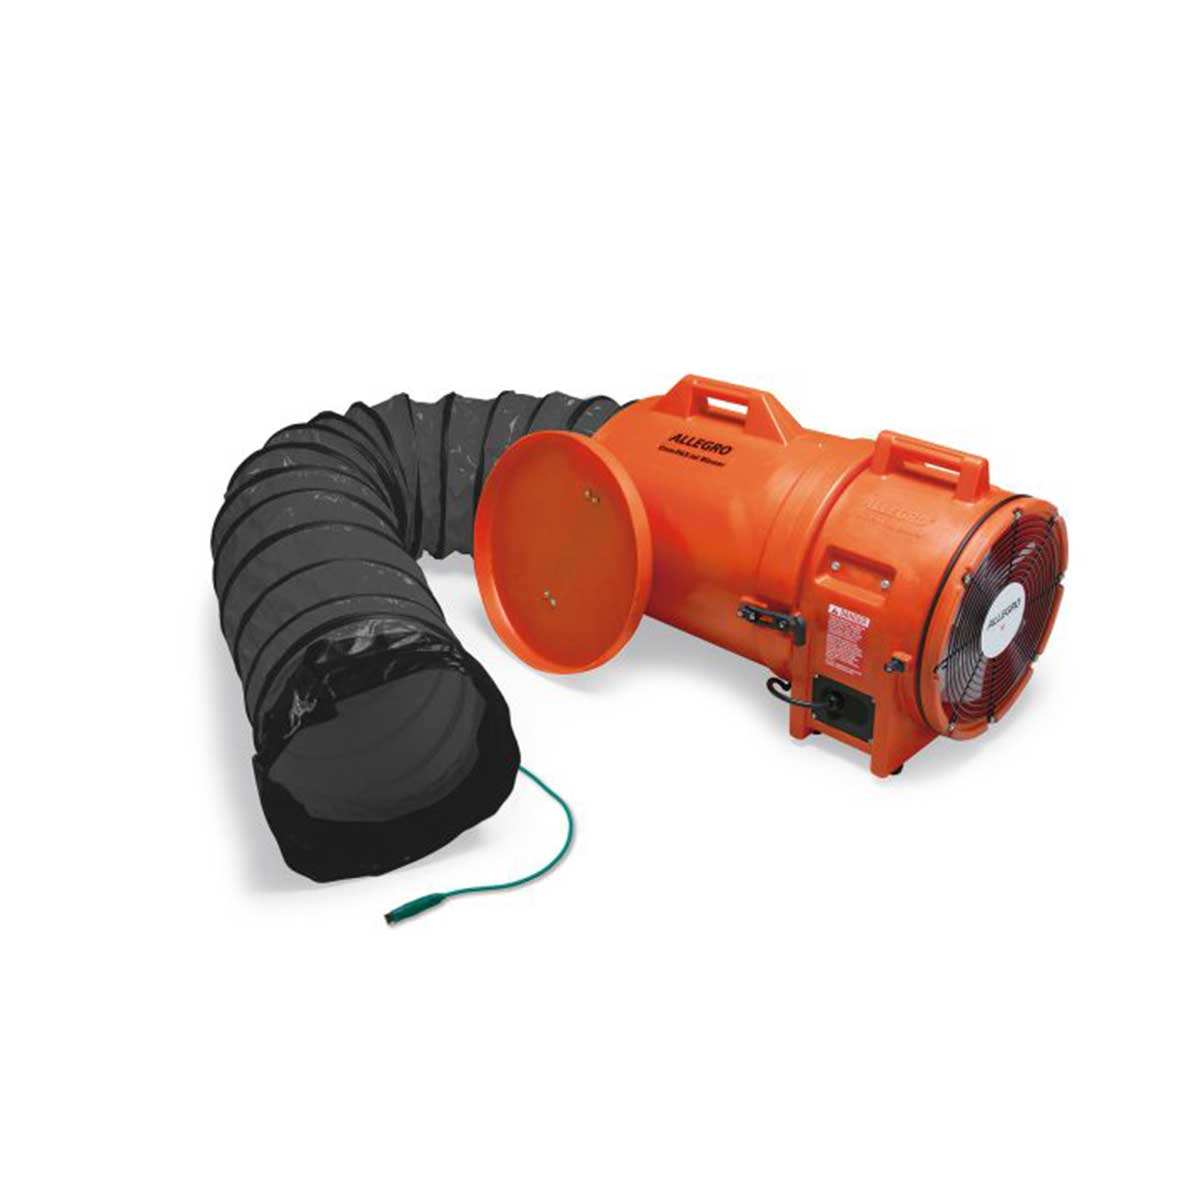 12″ Axial Explosion-Proof (EX) Plastic Blower w/ Canister & 15′ Ducting. Part: ALL-9548‐15. Pkg: 1